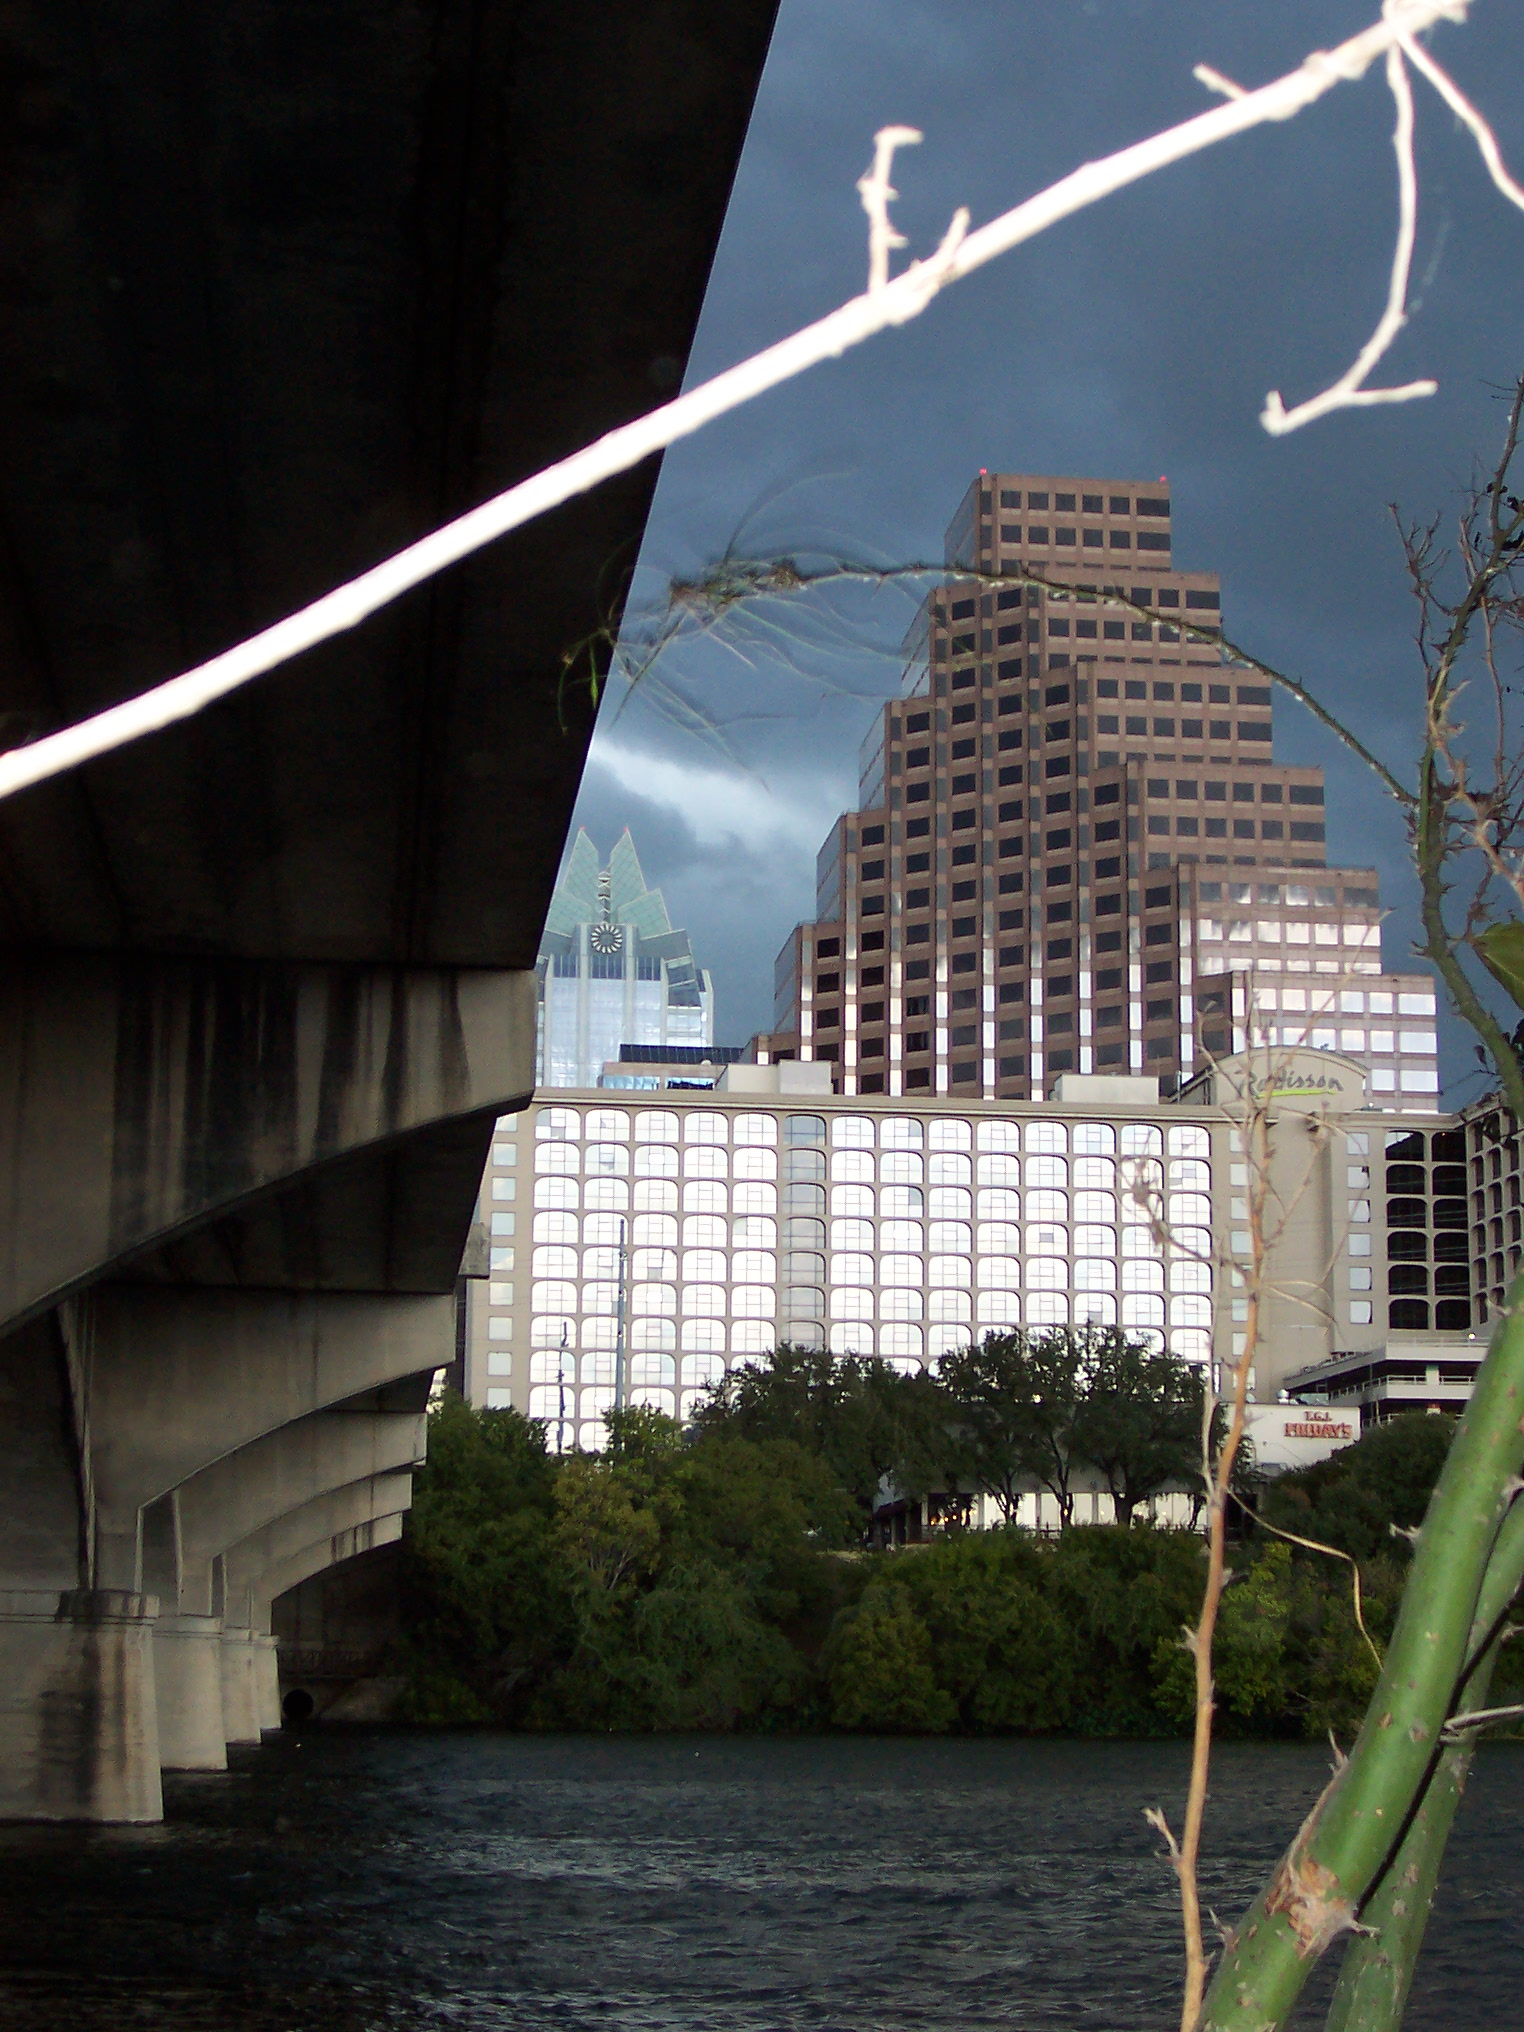 A triangular building in the Austin downtown, seen from under a bridge